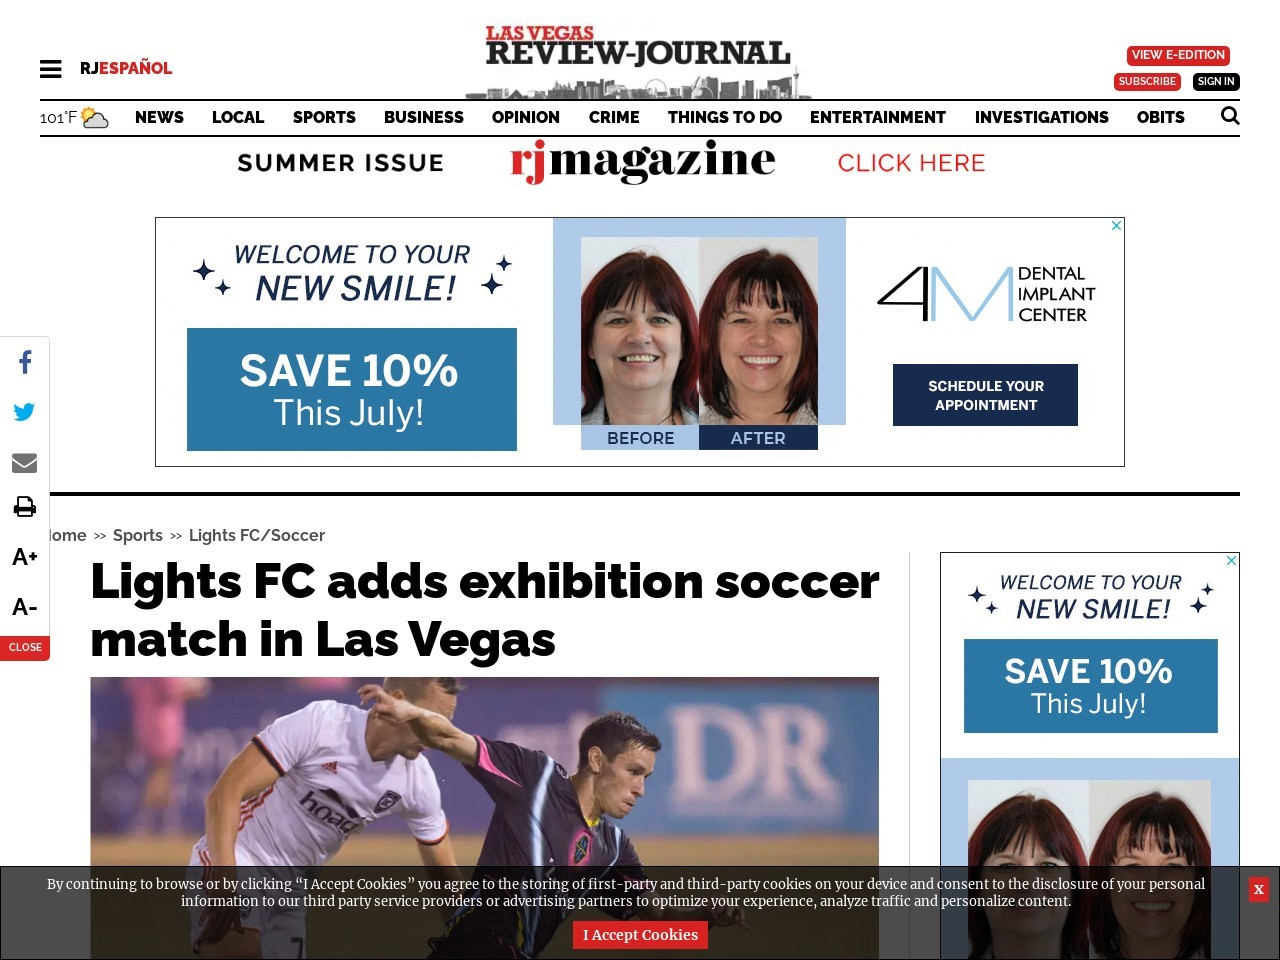 Lights FC adds exhibition soccer match in Las Vegas